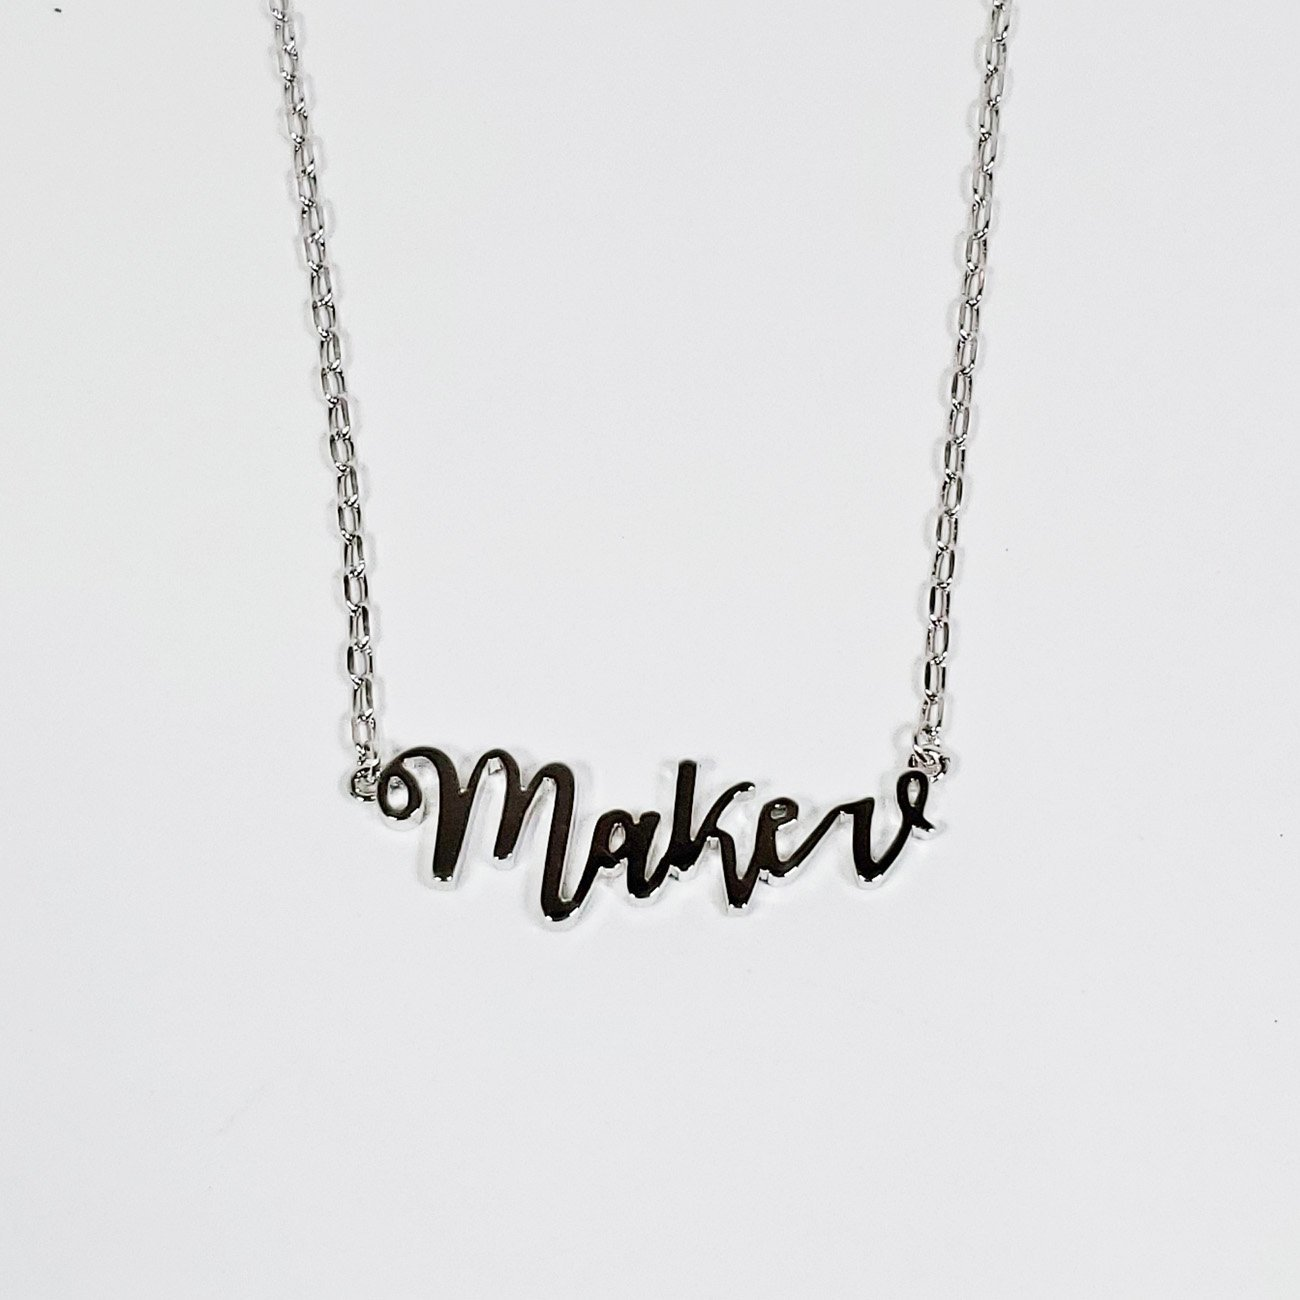 Maker Necklace Silver from the Quilt Spot